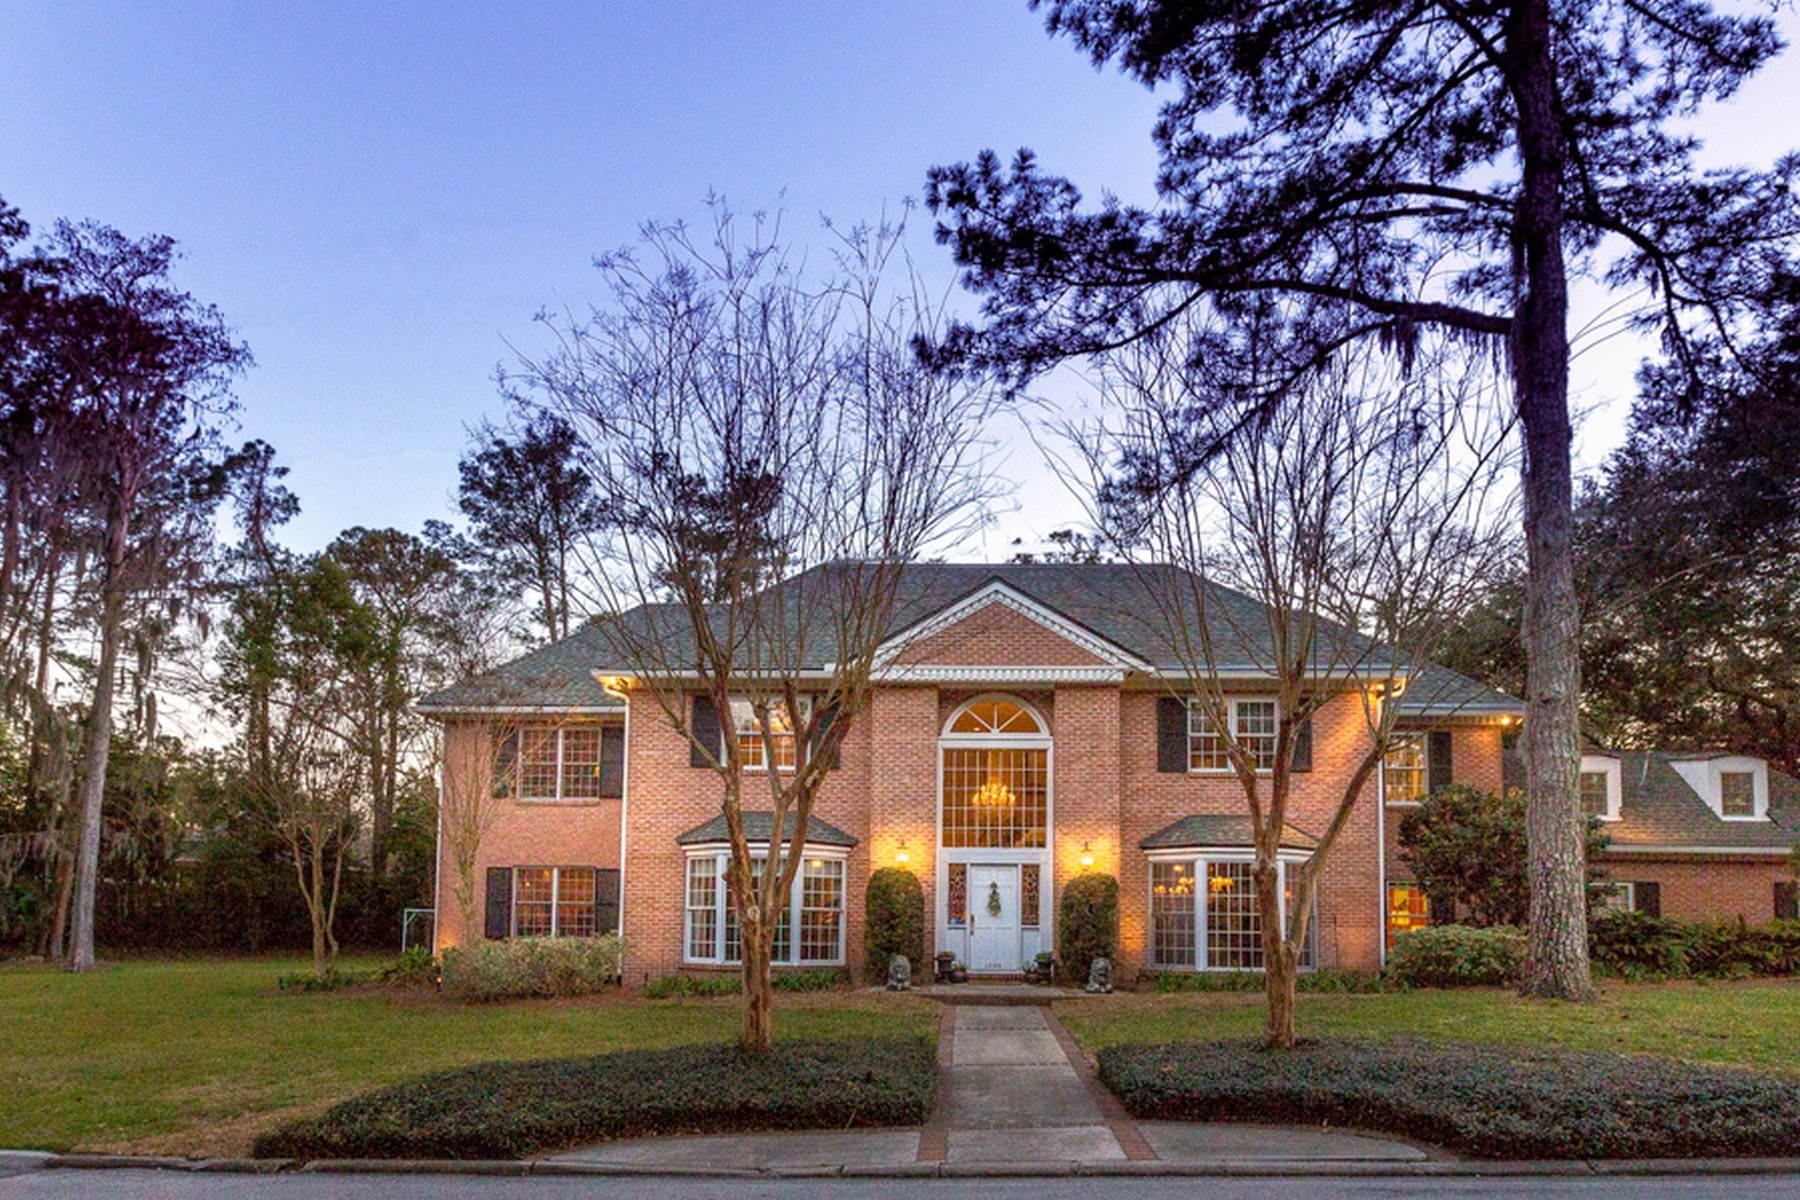 Single Family Home for Sale at Oriental Gardens 1020 Oriental Gardens Road San Marco, Jacksonville, Florida, 32207 United States